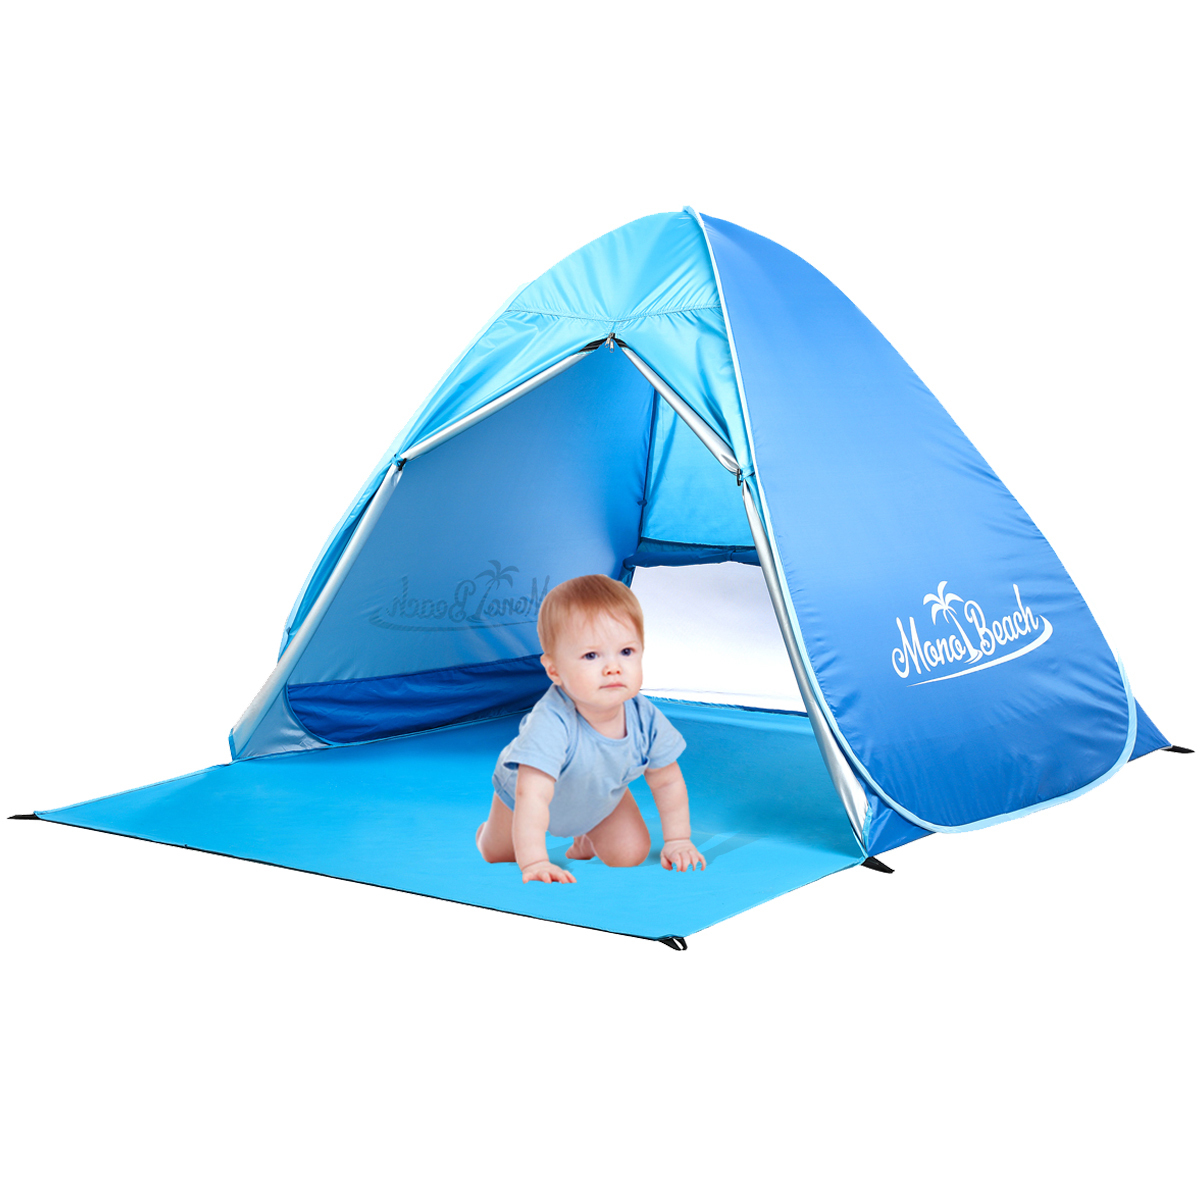 ... MonoBeach Baby Beach Tent Automatic Pop Up Cabana Sun Shelte ...  sc 1 st  Monobeach : small pop up beach tent - memphite.com